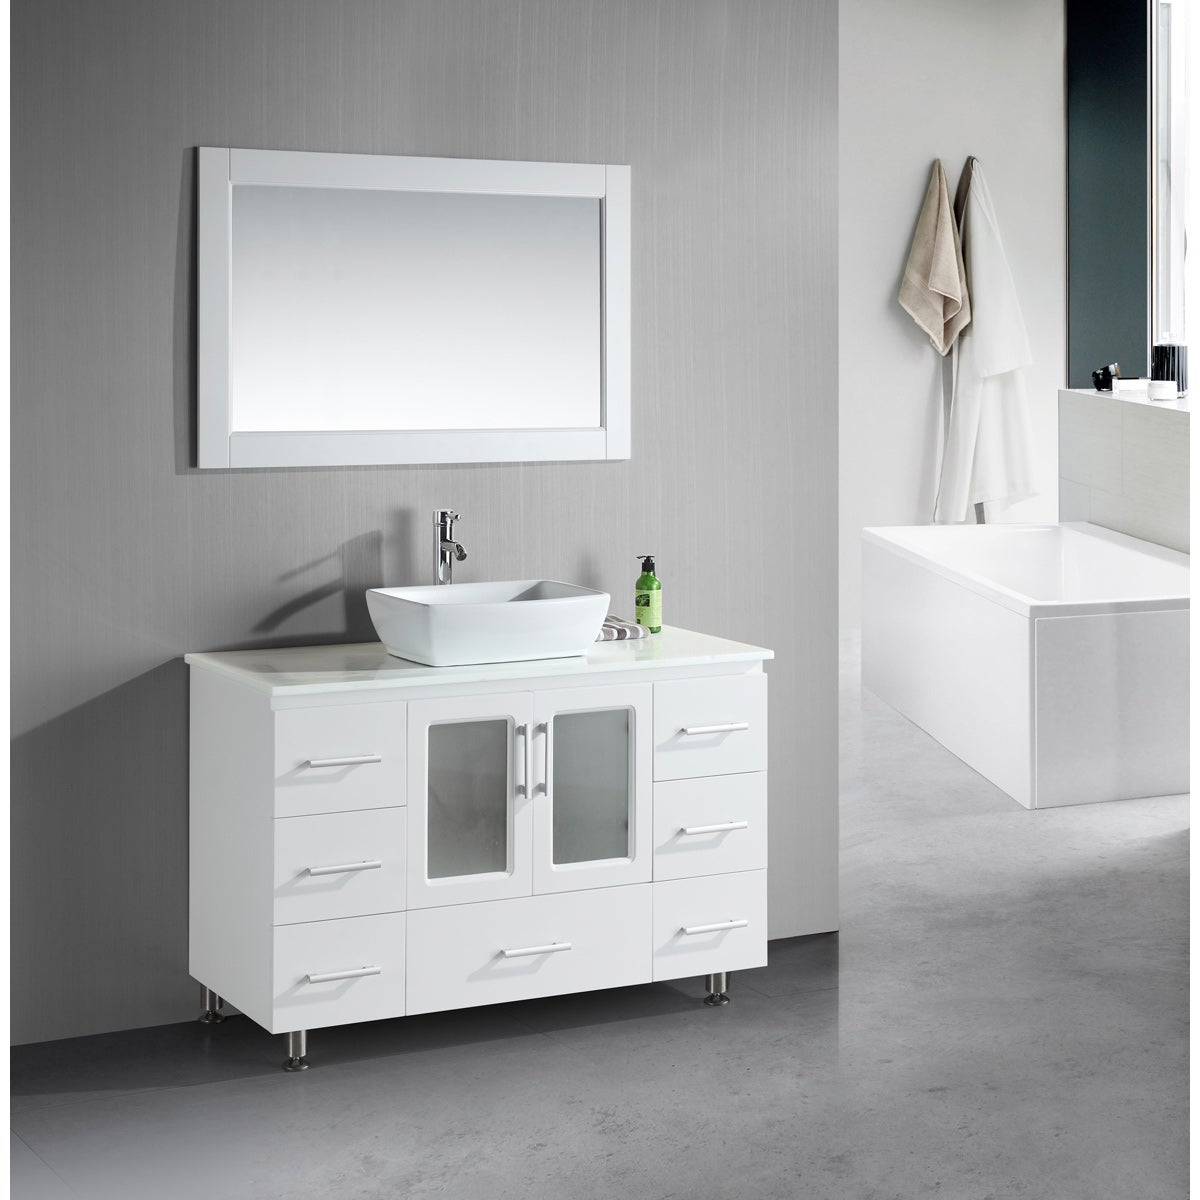 Design Element Stanton 48 Inch Single Vessel Sink White Vanity Free Shipping Today 8223764